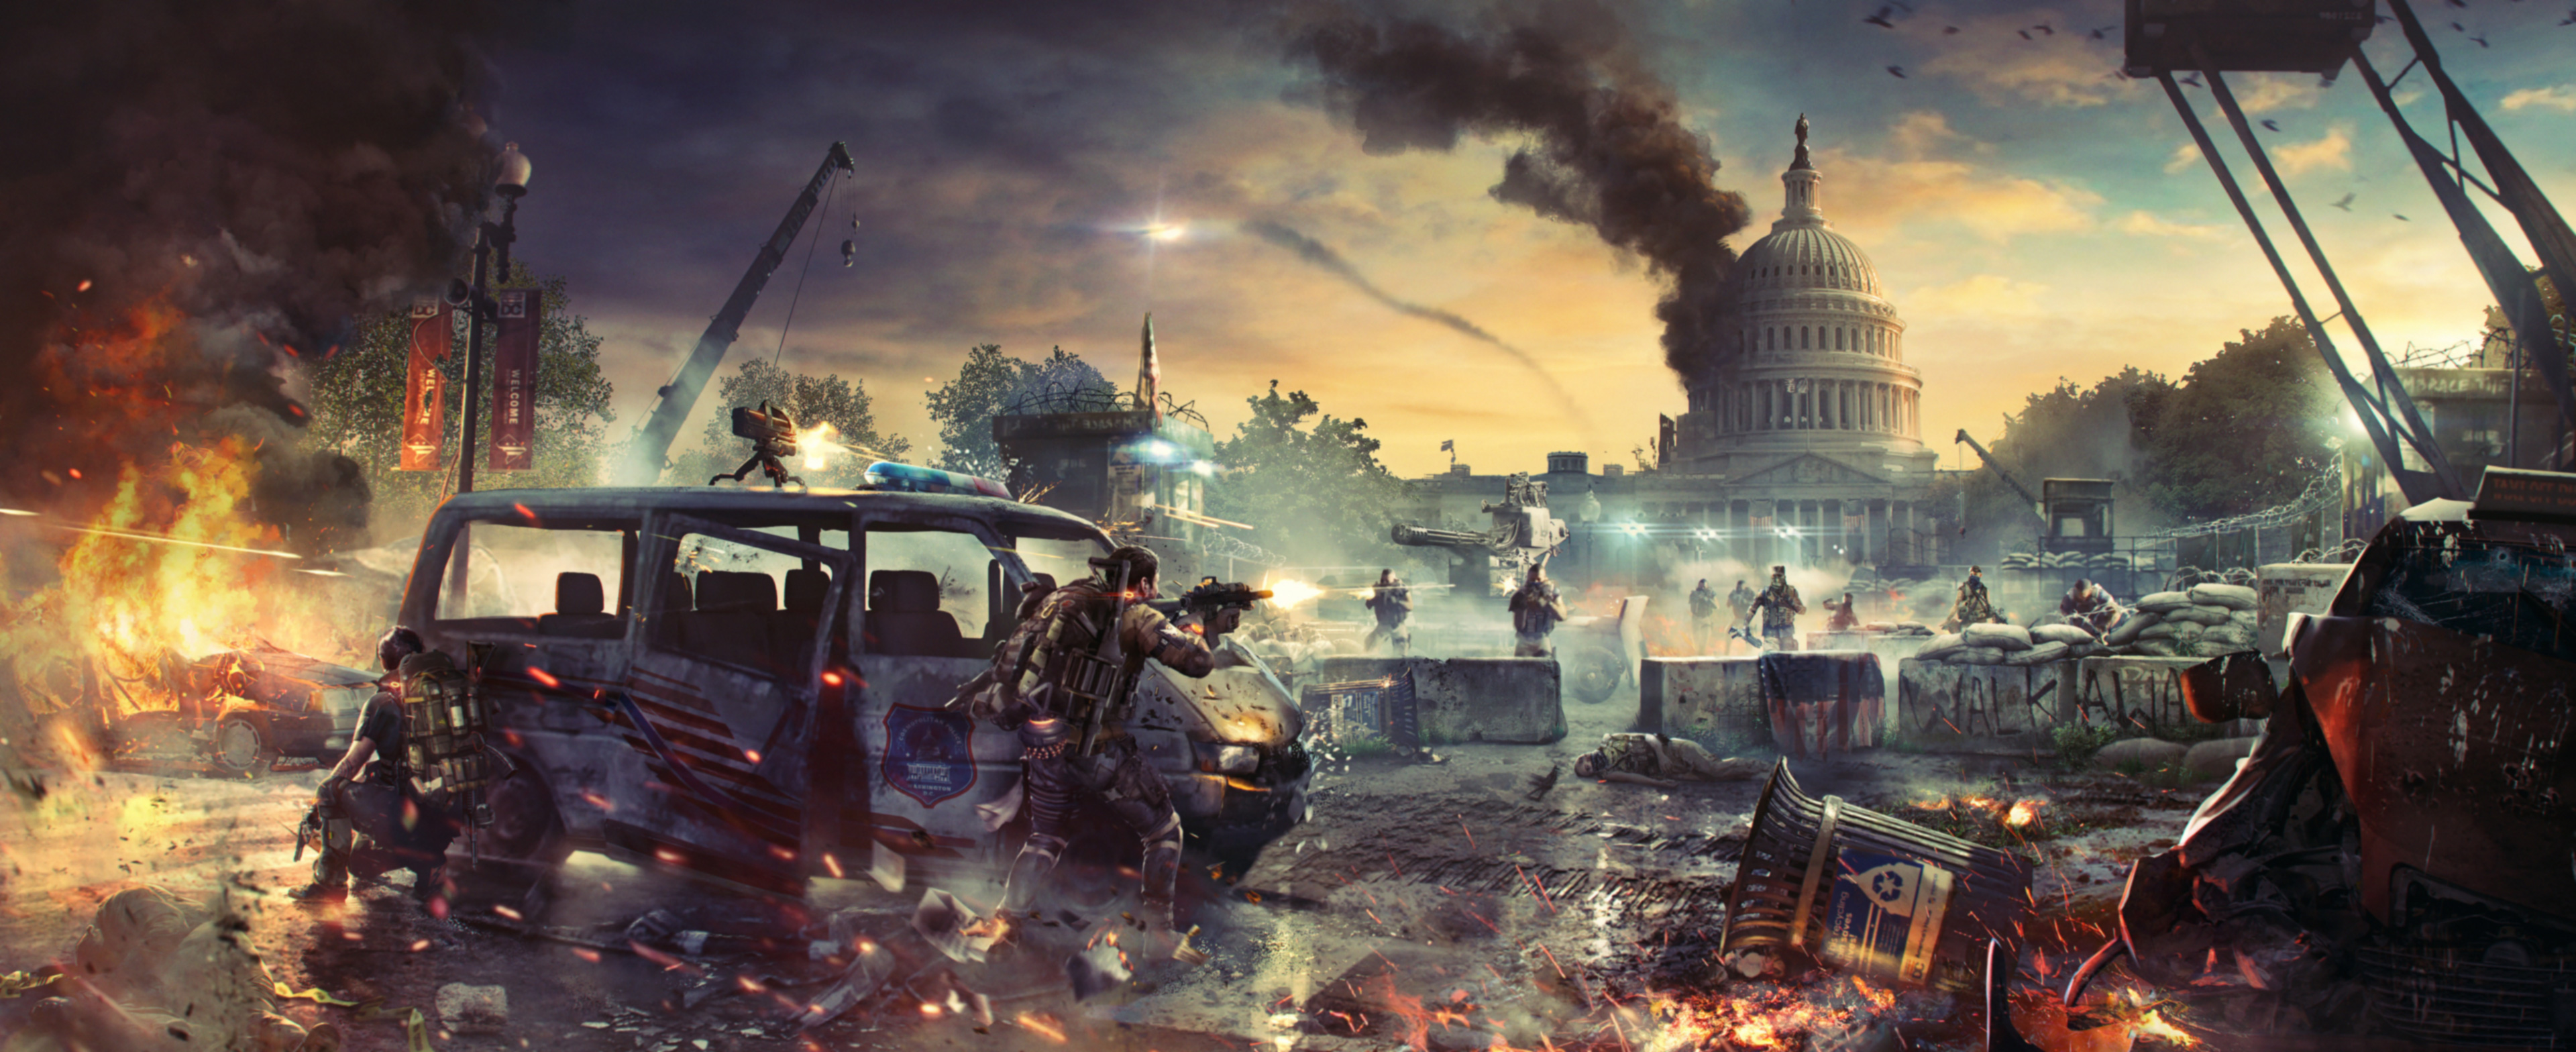 Tom Clancys The Division 2 Video Game, HD Games, 4k